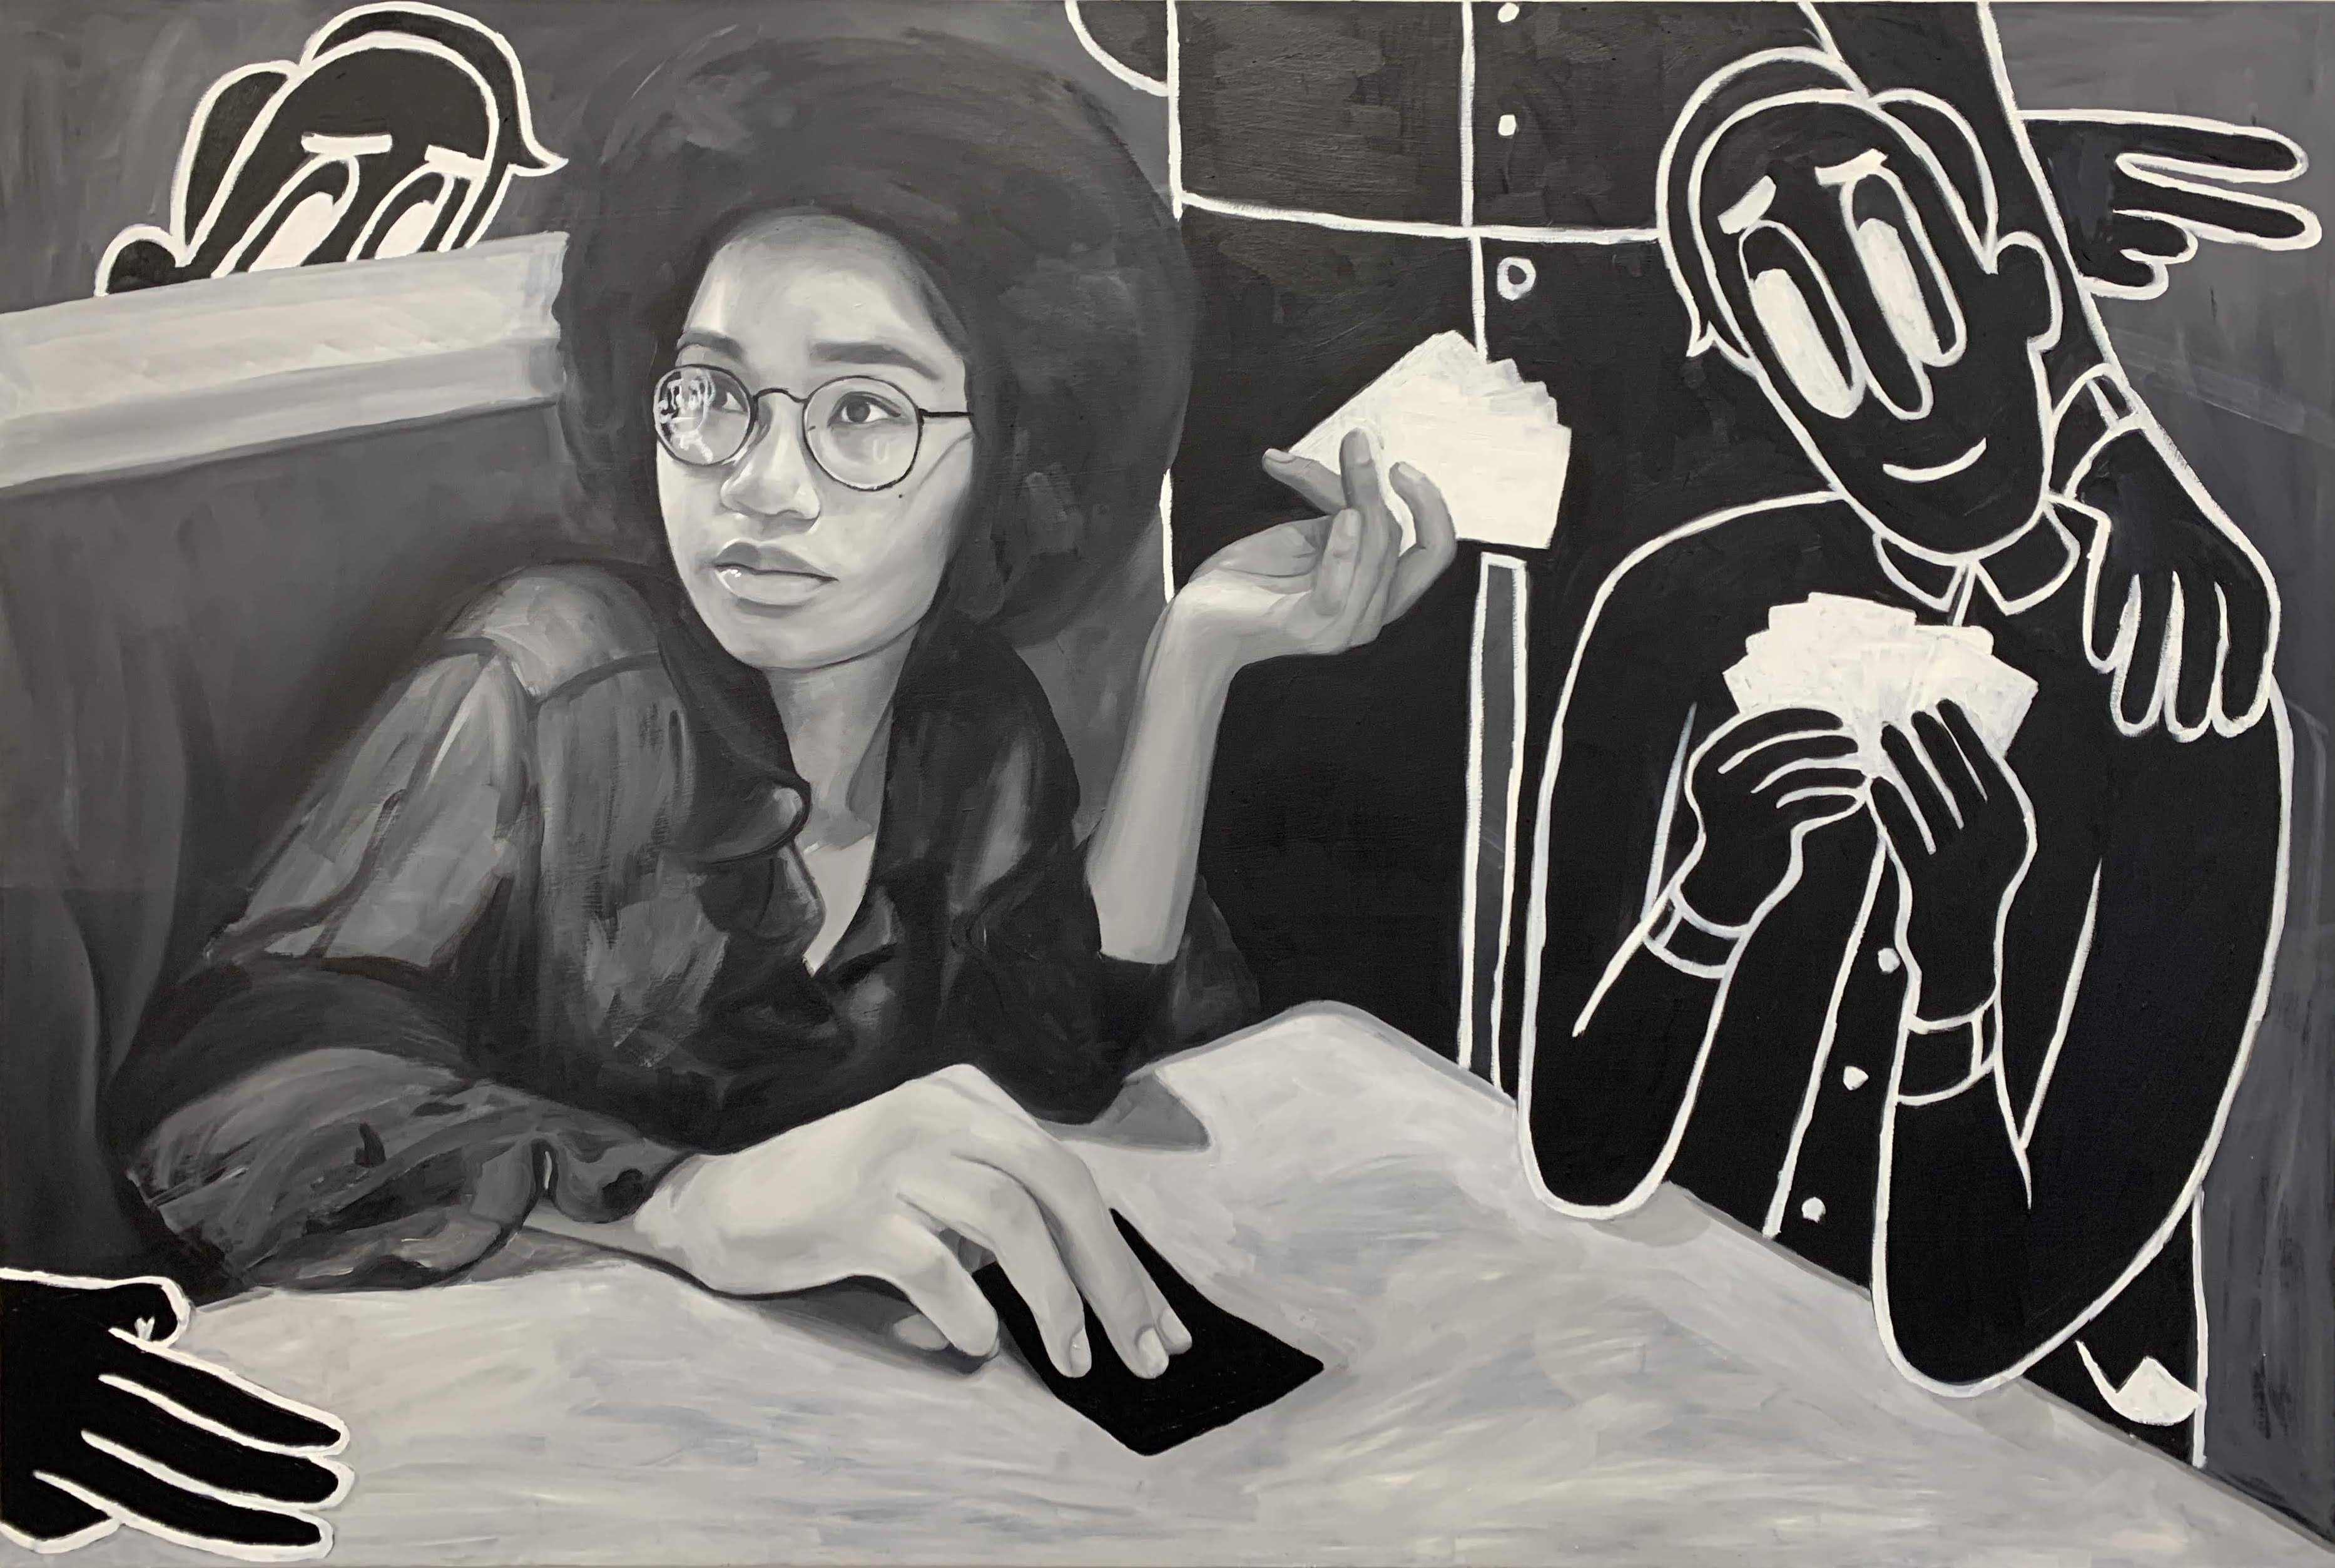 Brittany Tucker.<em> Can I Pay By Card?</em>, 2019. Oil on panel, 24 x 36 inches (61 x 91.4 cm)